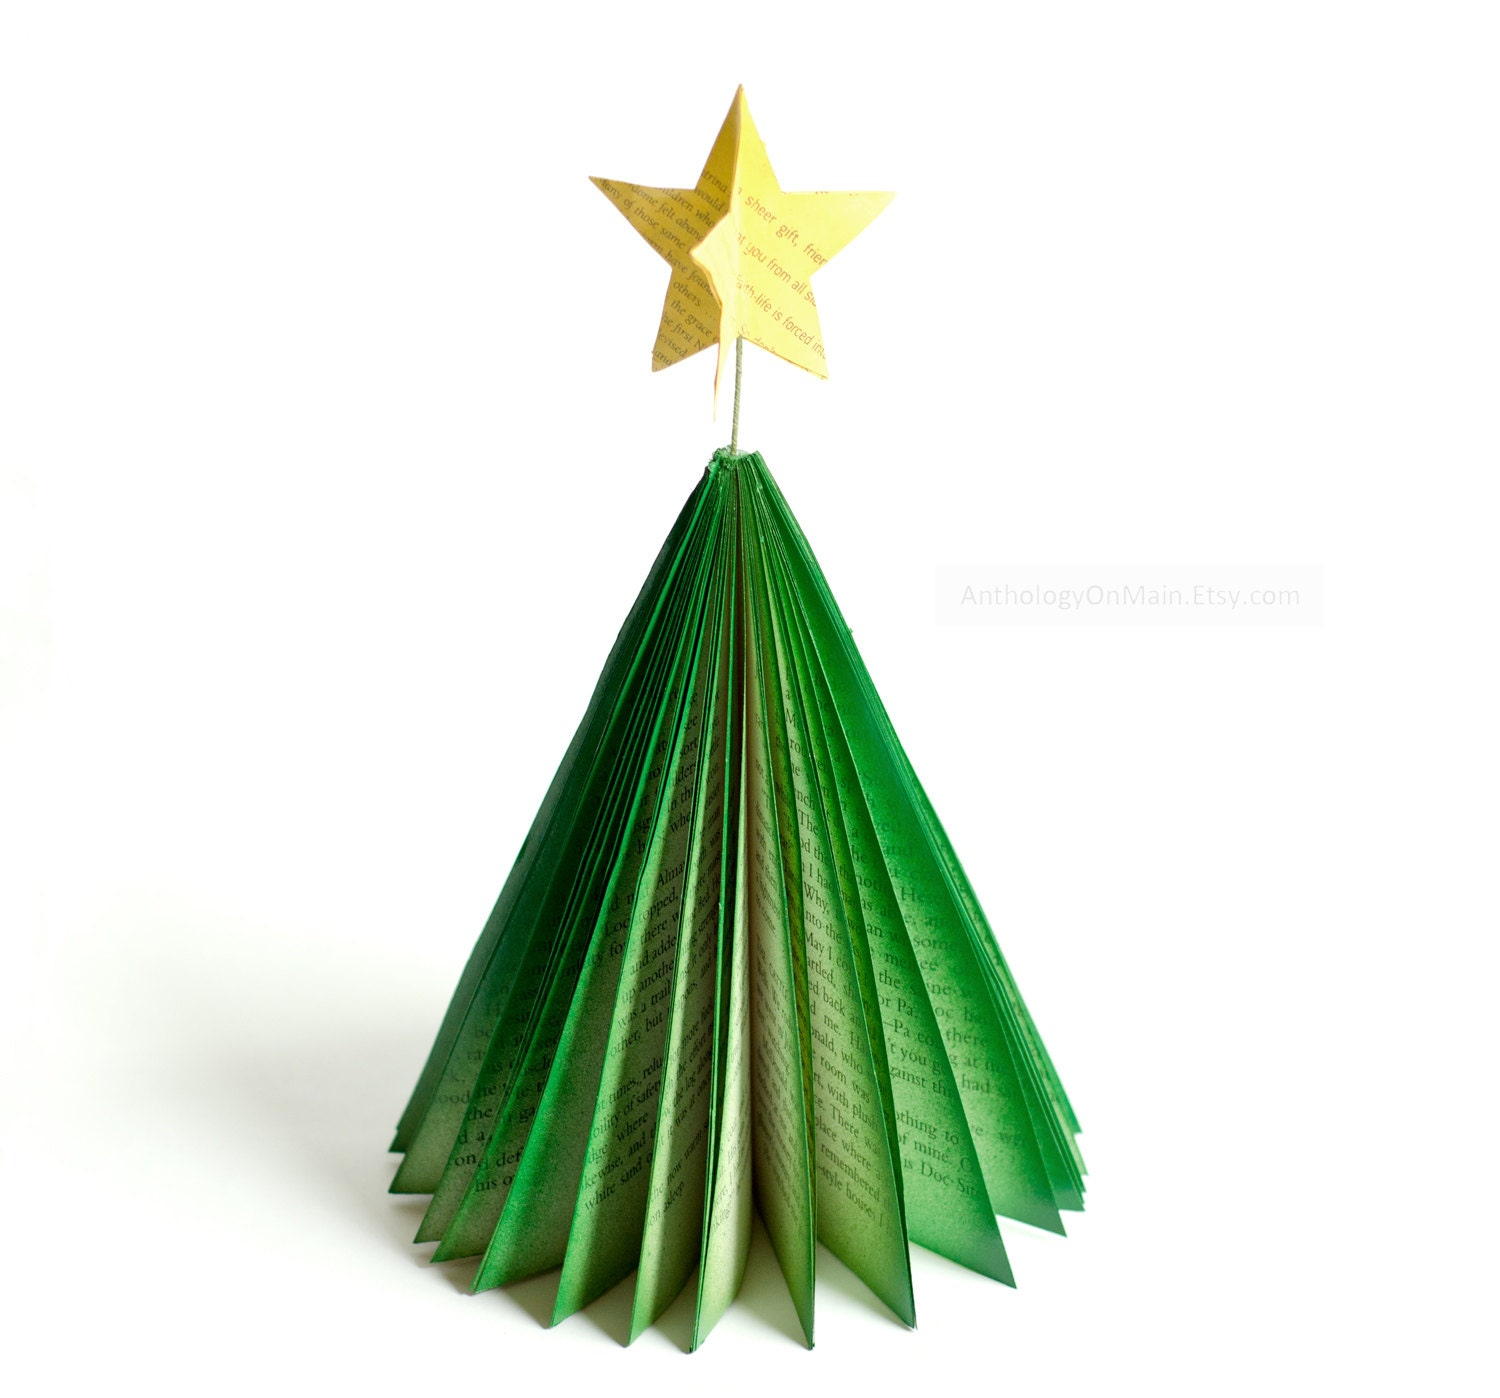 Colorful Paper Christmas Tree Decoration - CHOICE OF COLOR - Medium Size - Holiday Folk Book Page Tree with Star - Holiday Home Decor - AnthologyOnMain